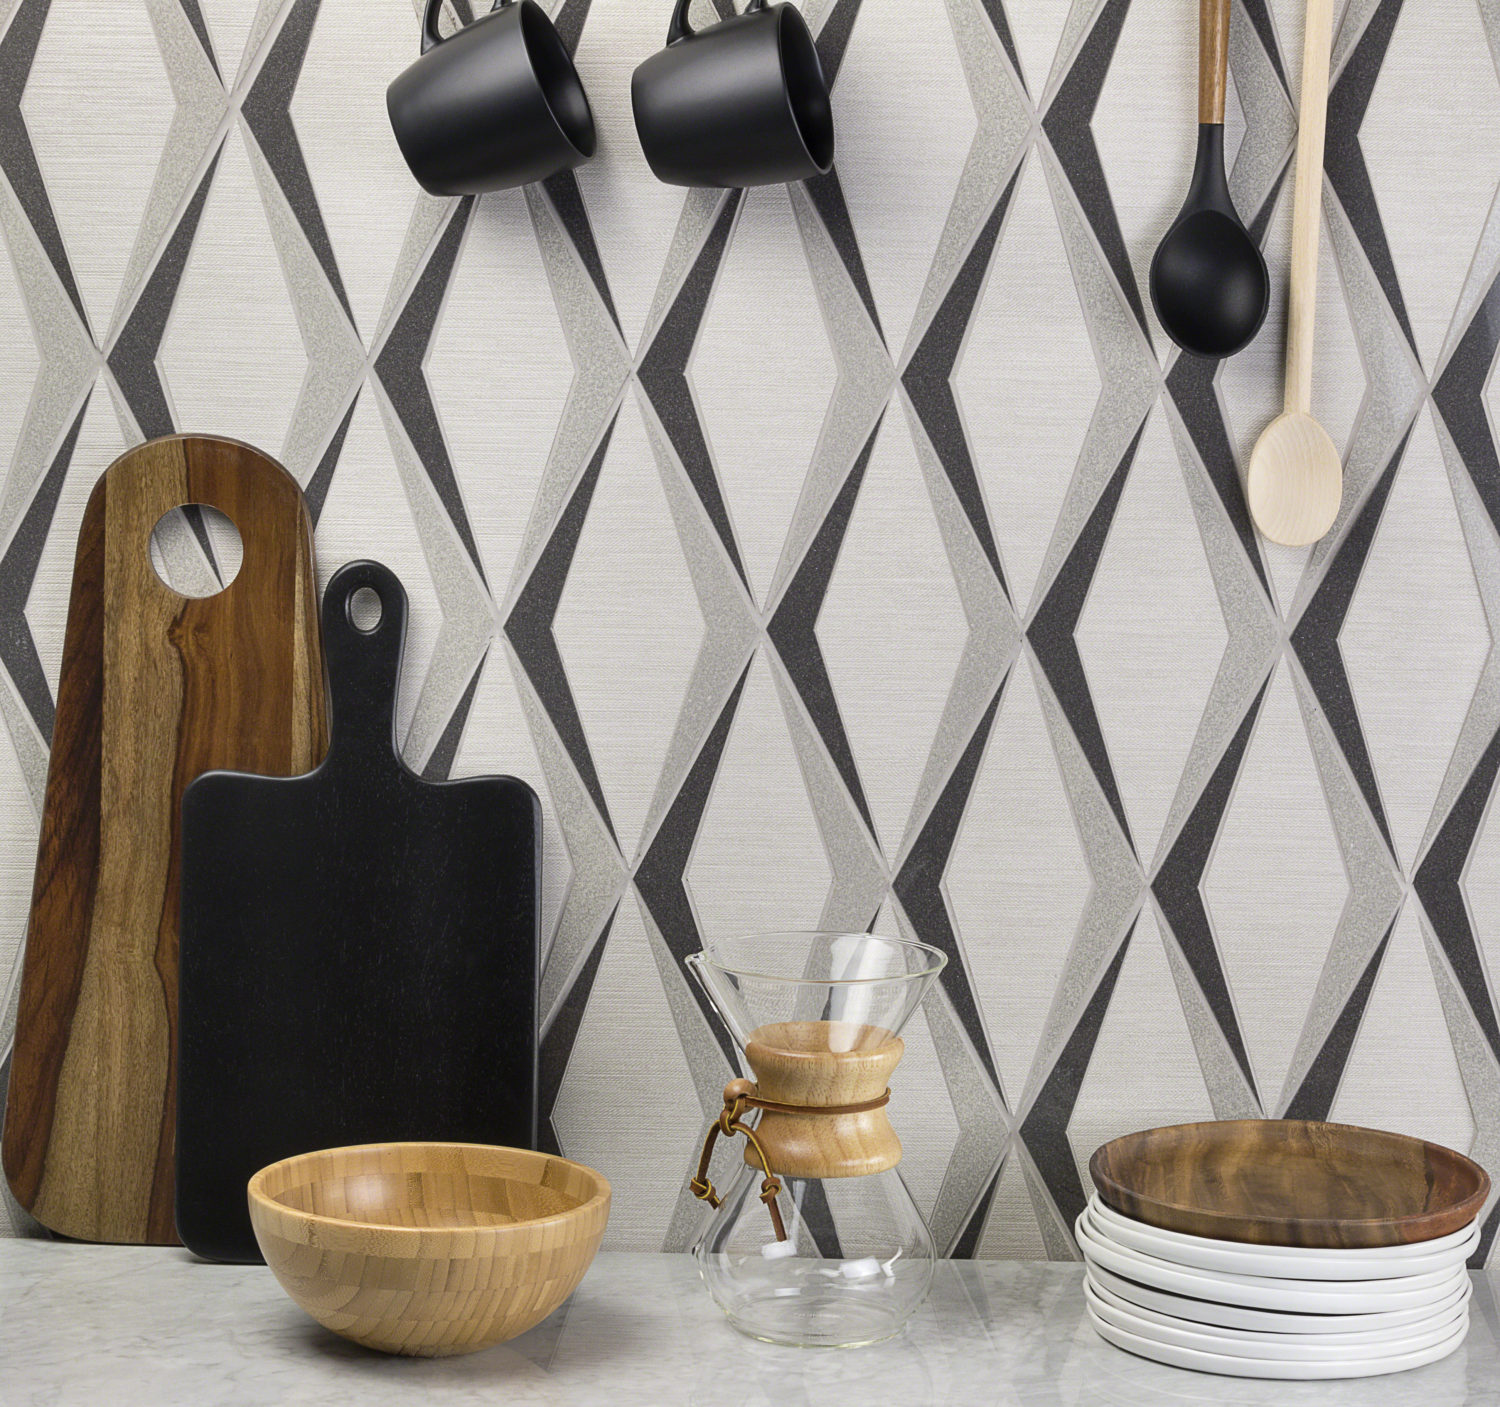 Best Ways to Use Tile - Ascot from the Gabardine Collection by Stacy Garcia │New York for TileBar - Life-Styled.net